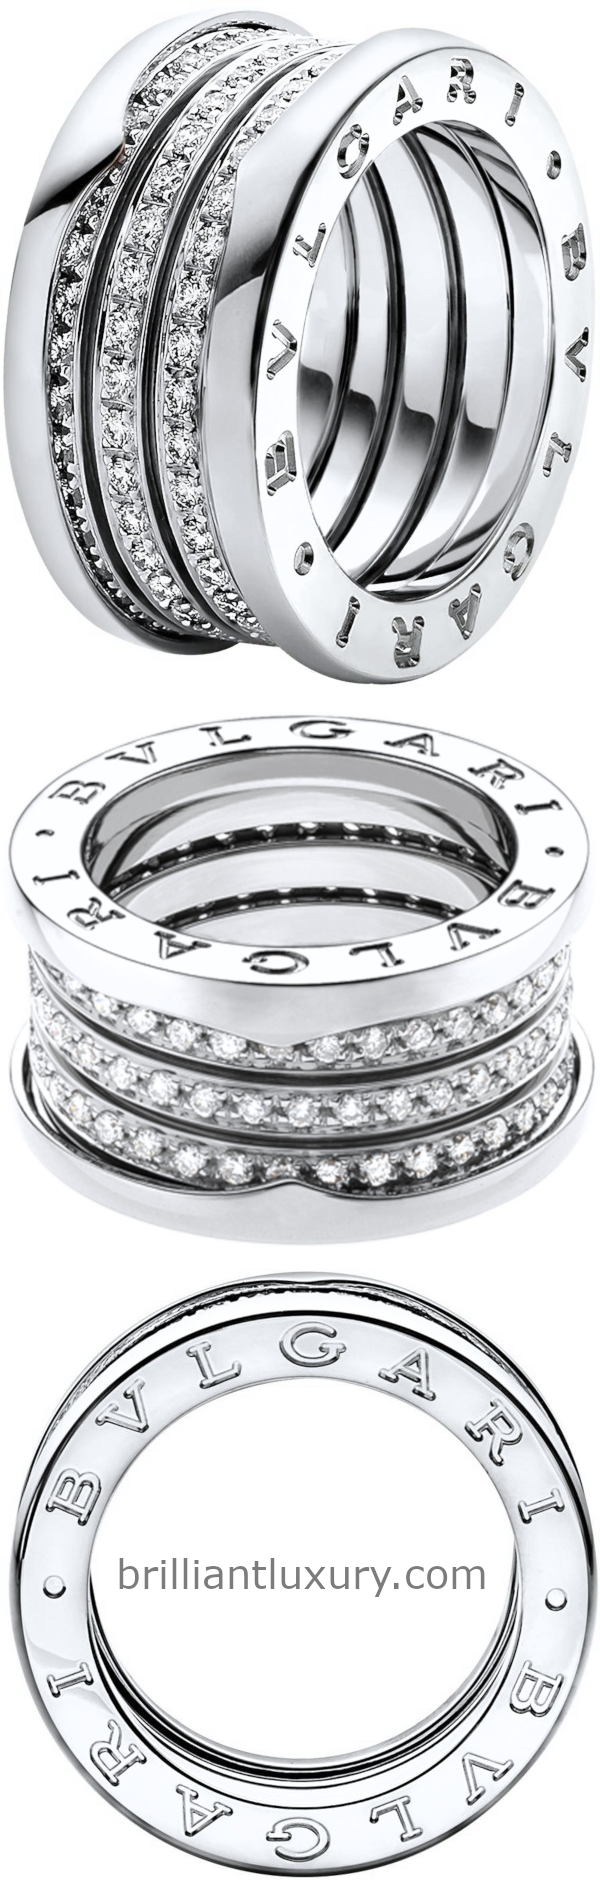 Bvlgari B.Zero1 four-band ring in 18kt white gold set with pavé diamonds on the spiral